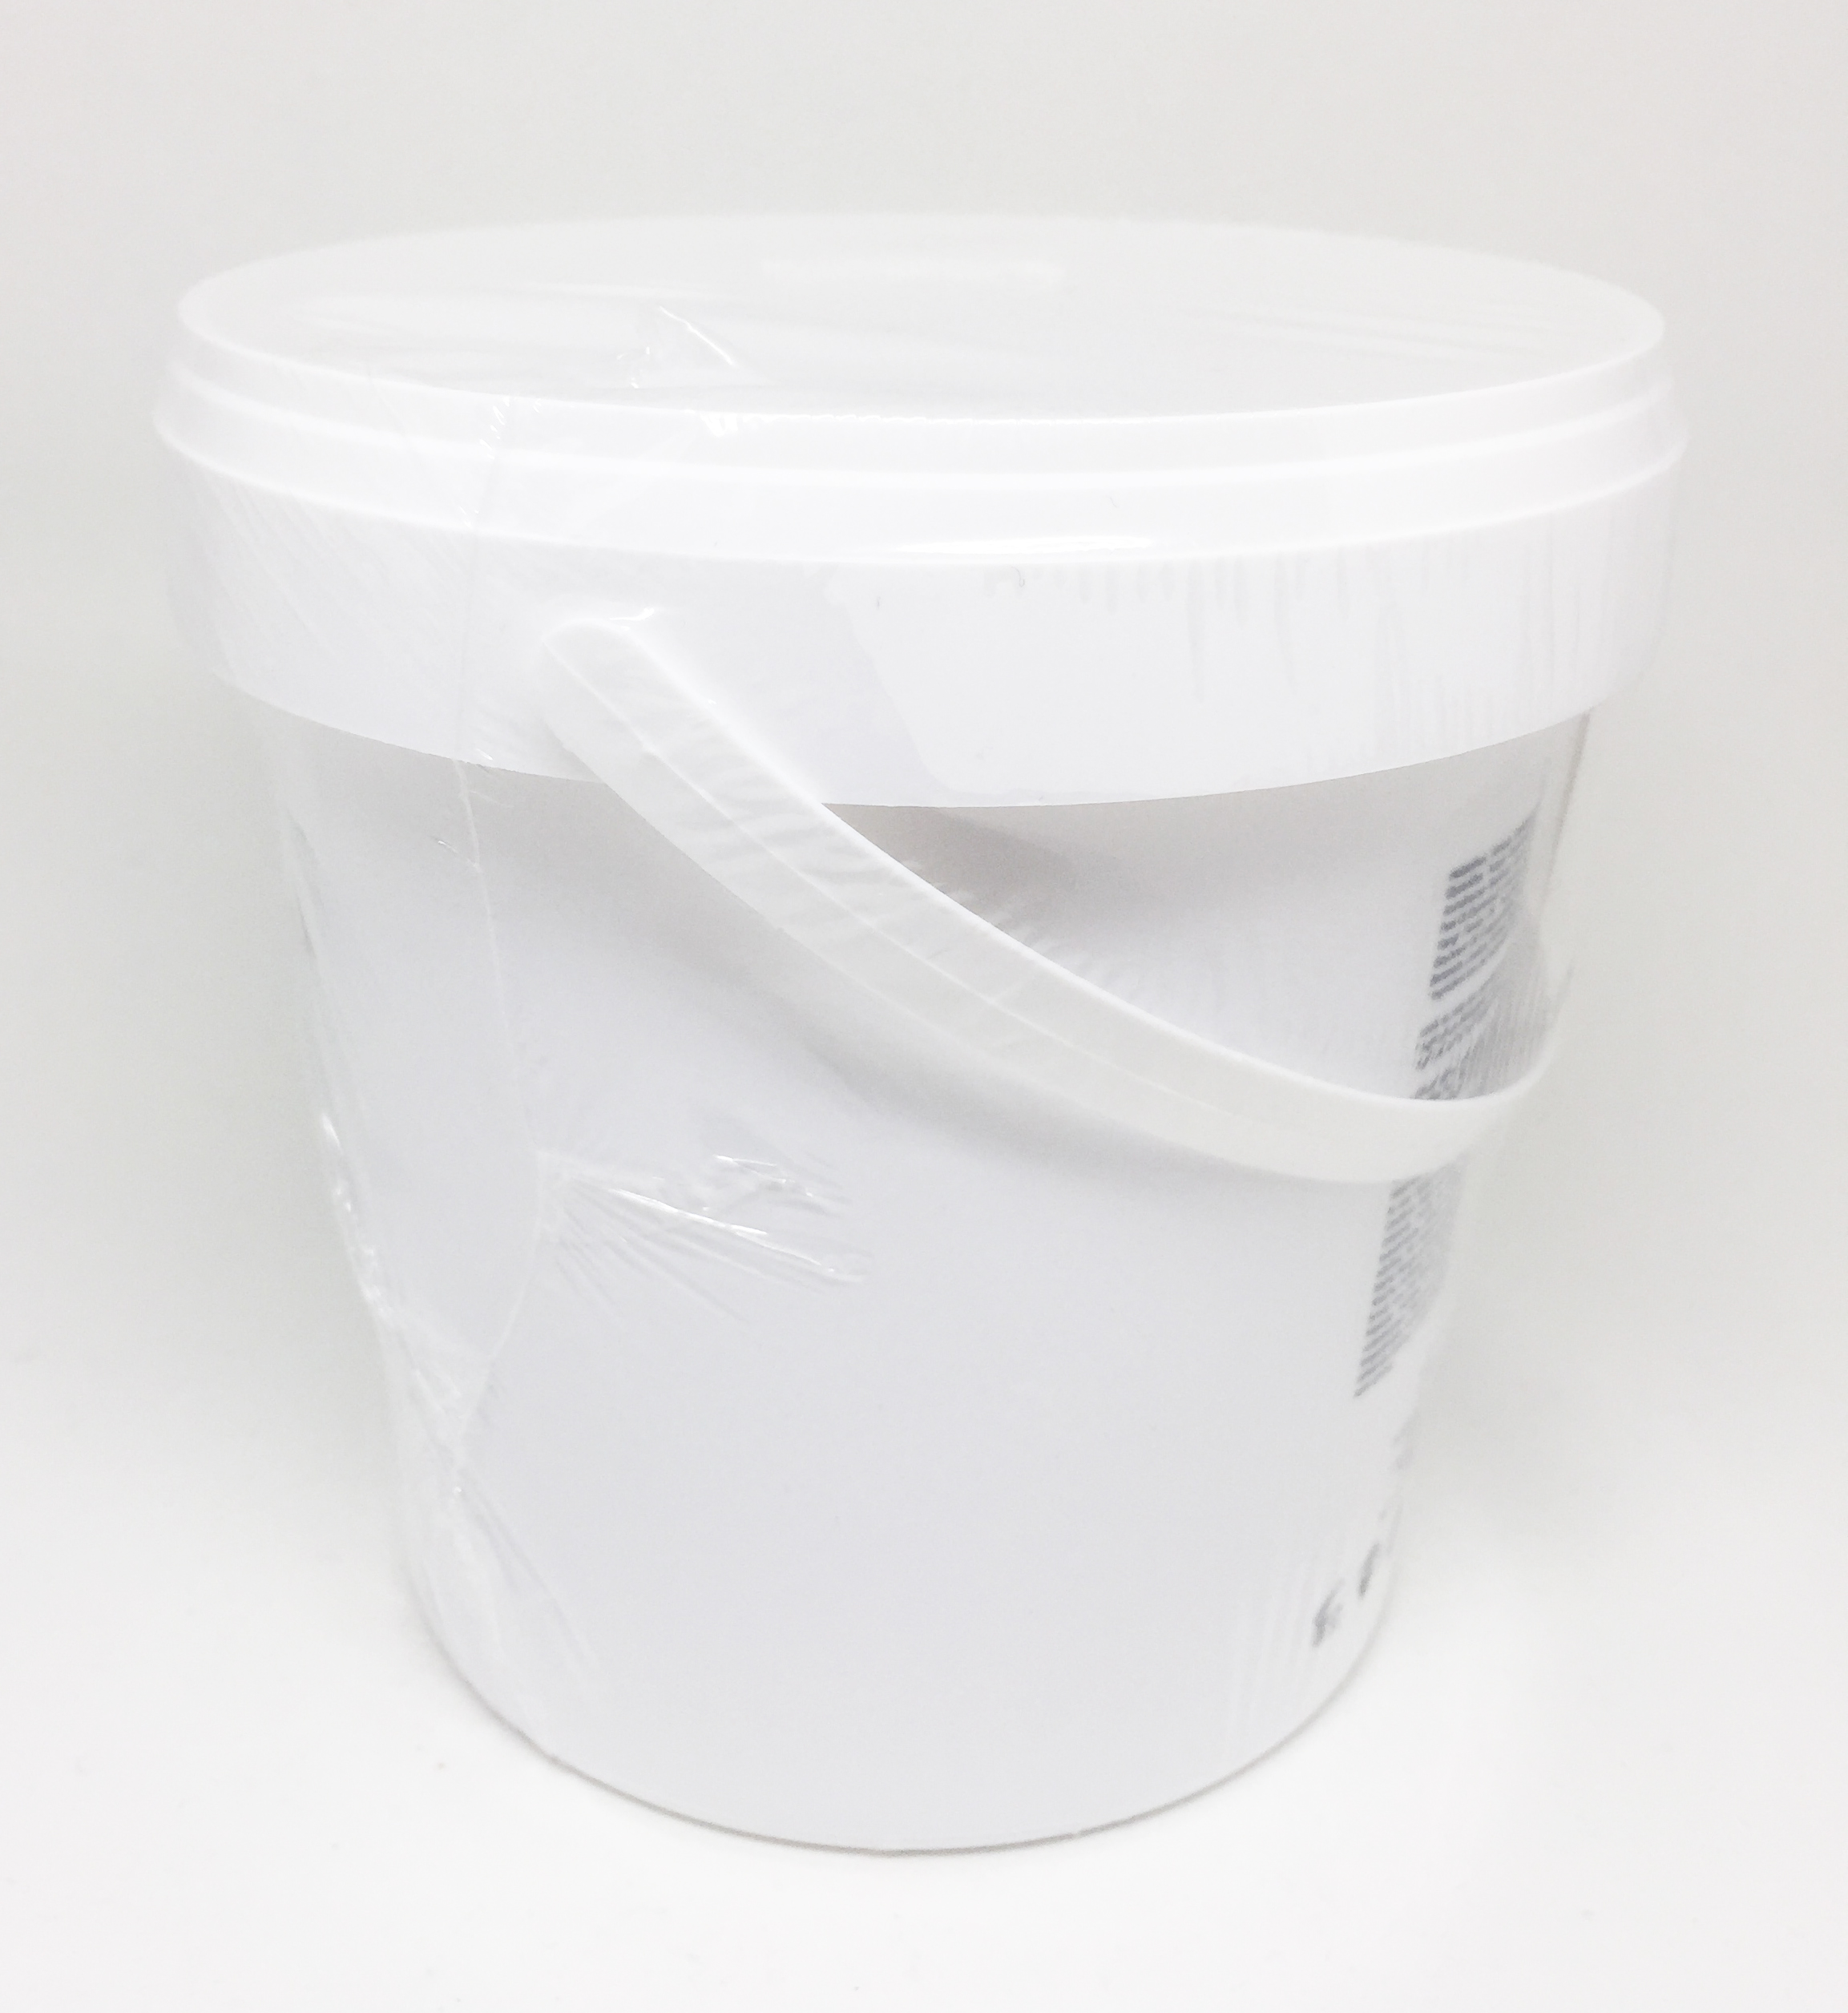 All professional product tubs have handles